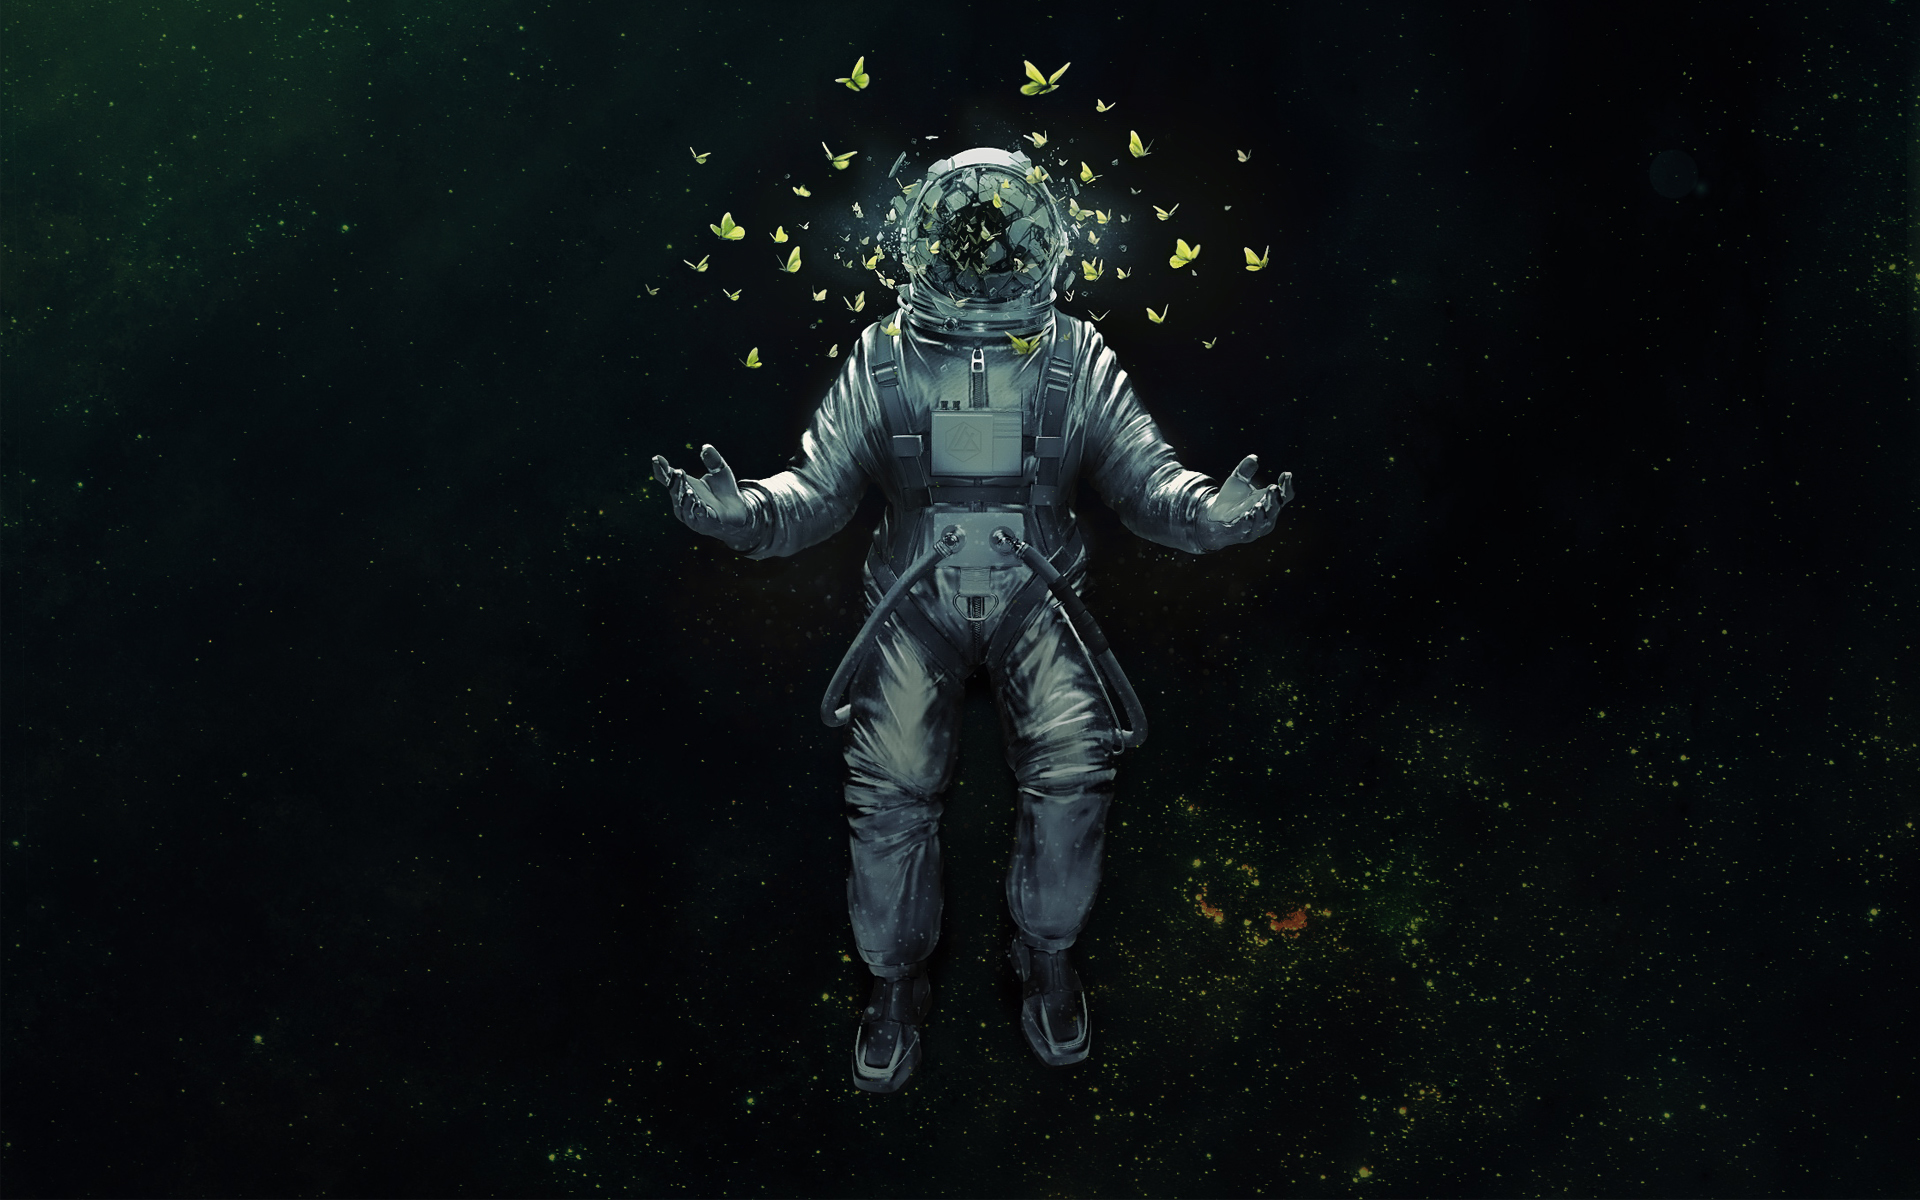 astronaut floating away - photo #12